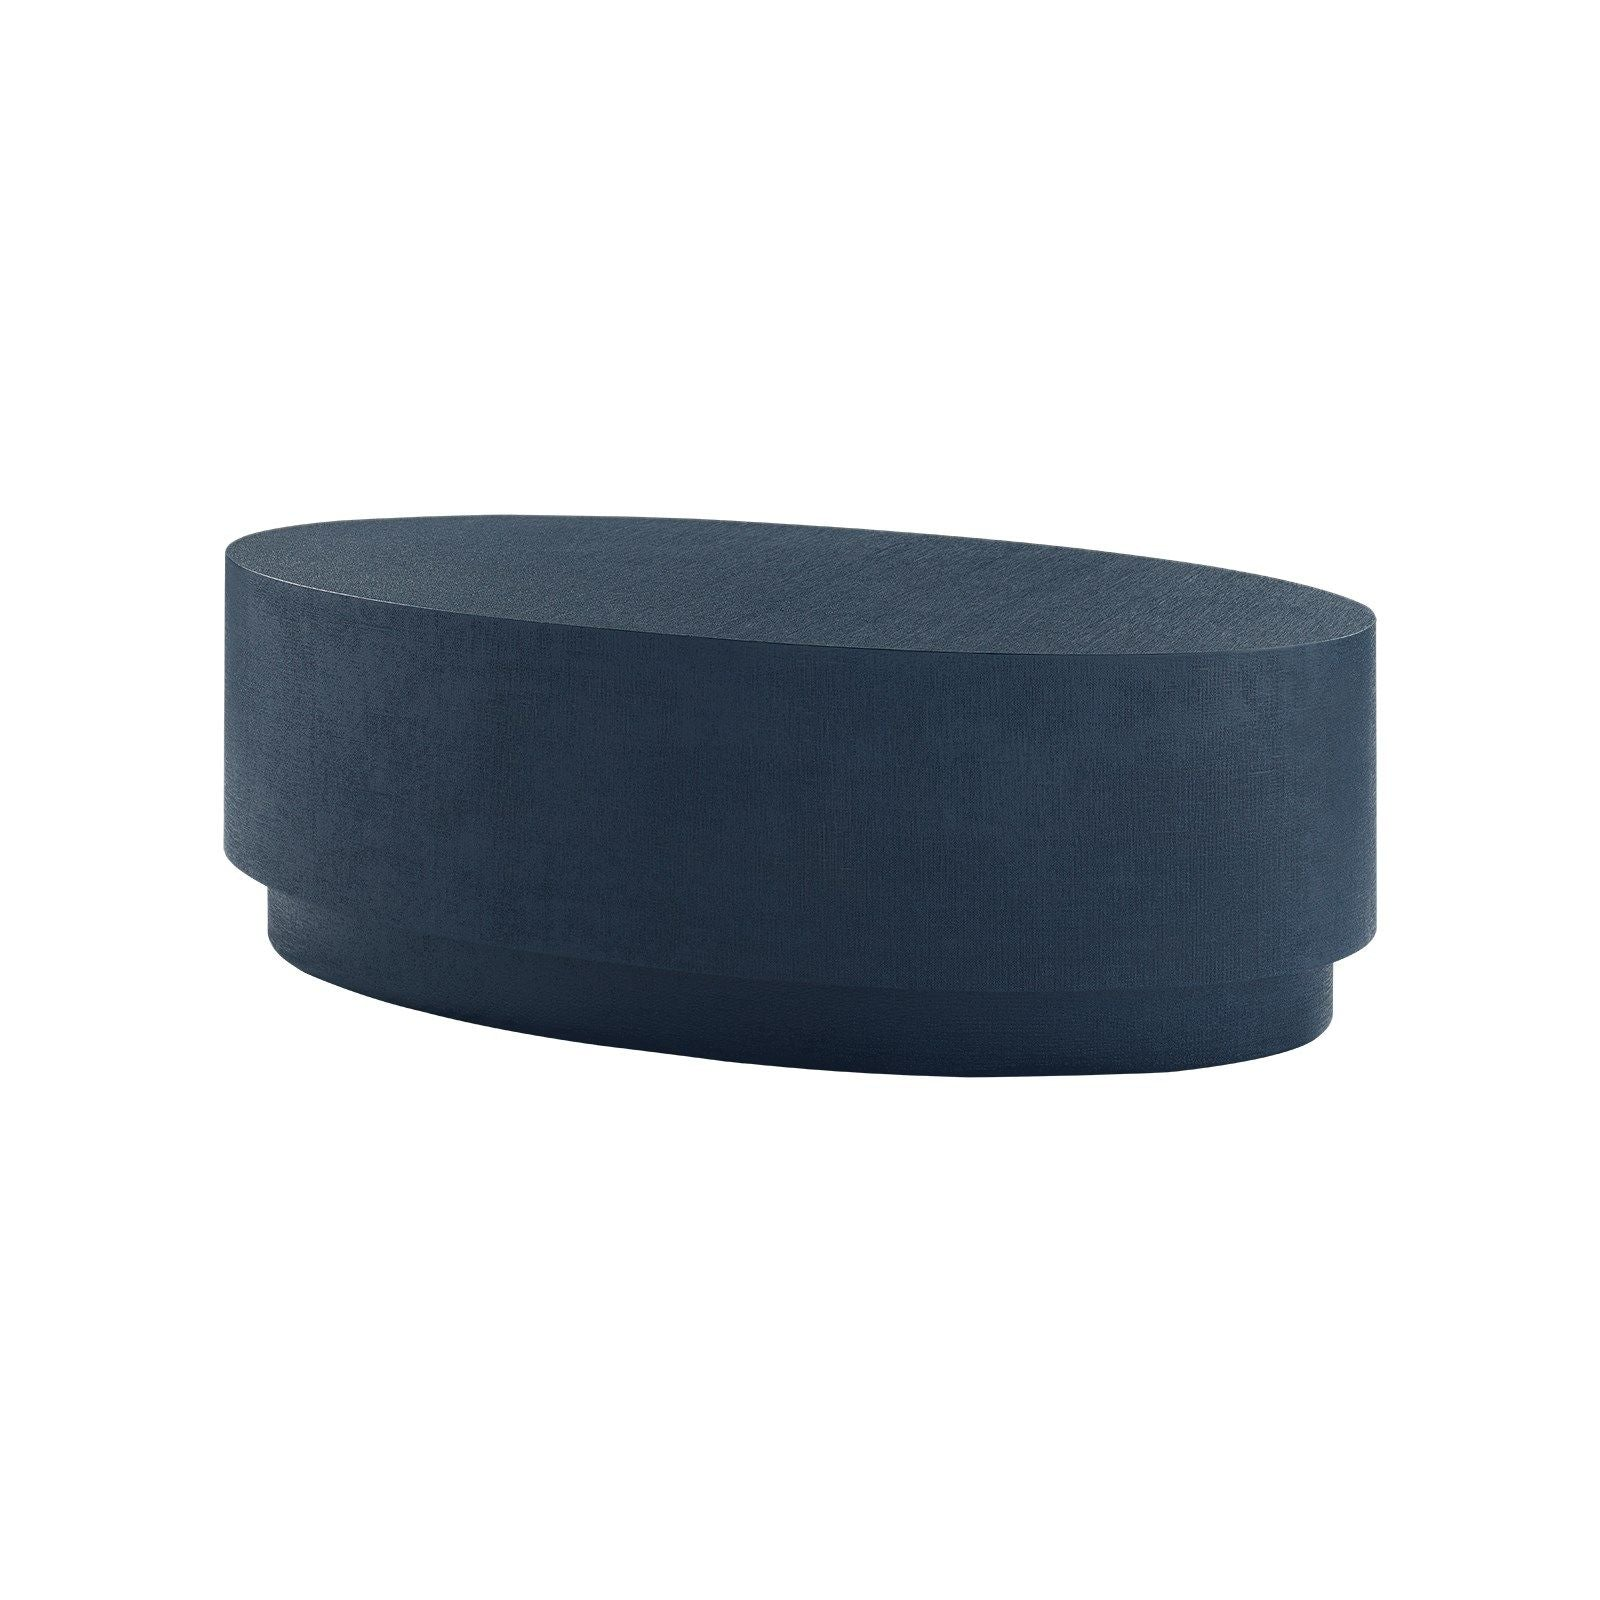 Bungalow 5 - MILA OVAL COFFEE TABLE, NAVY BLUE